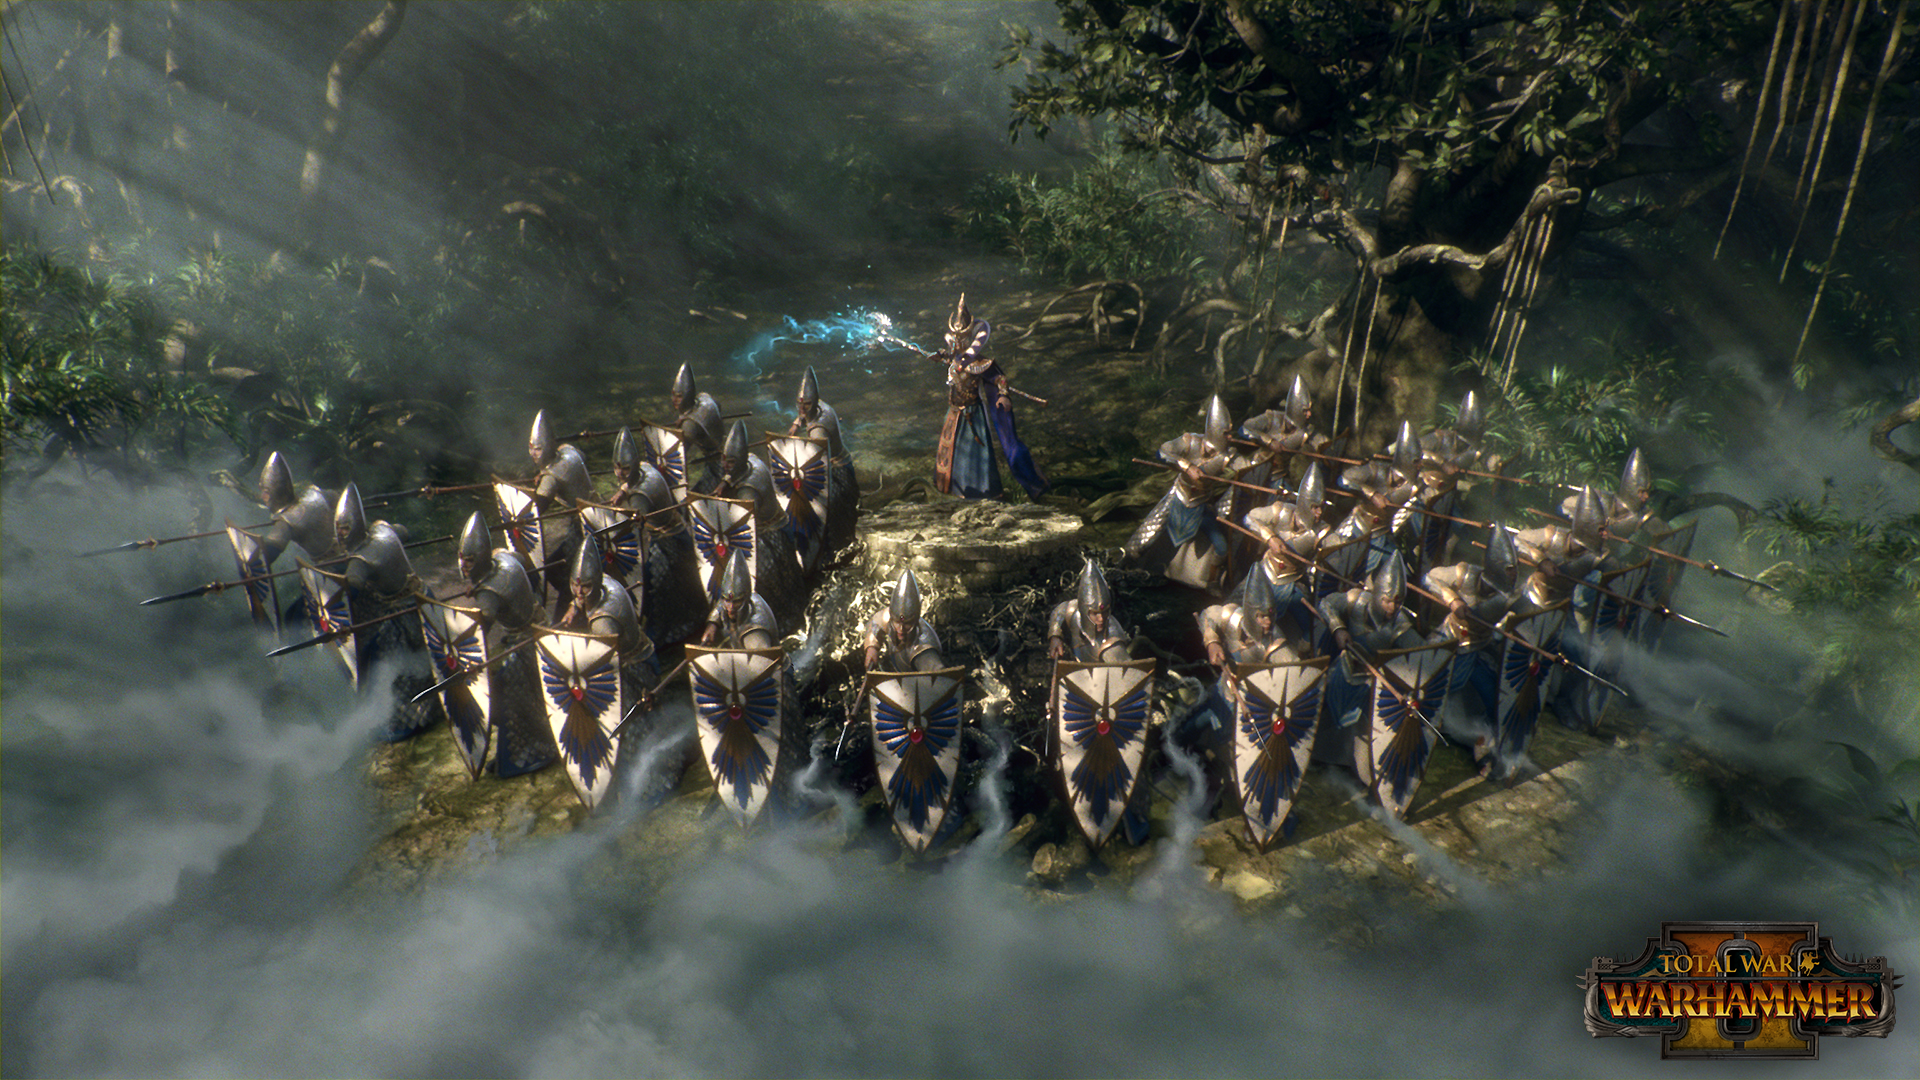 Warhammer Ii Hd Wallpaper Total War Warhammer 2 High Elves